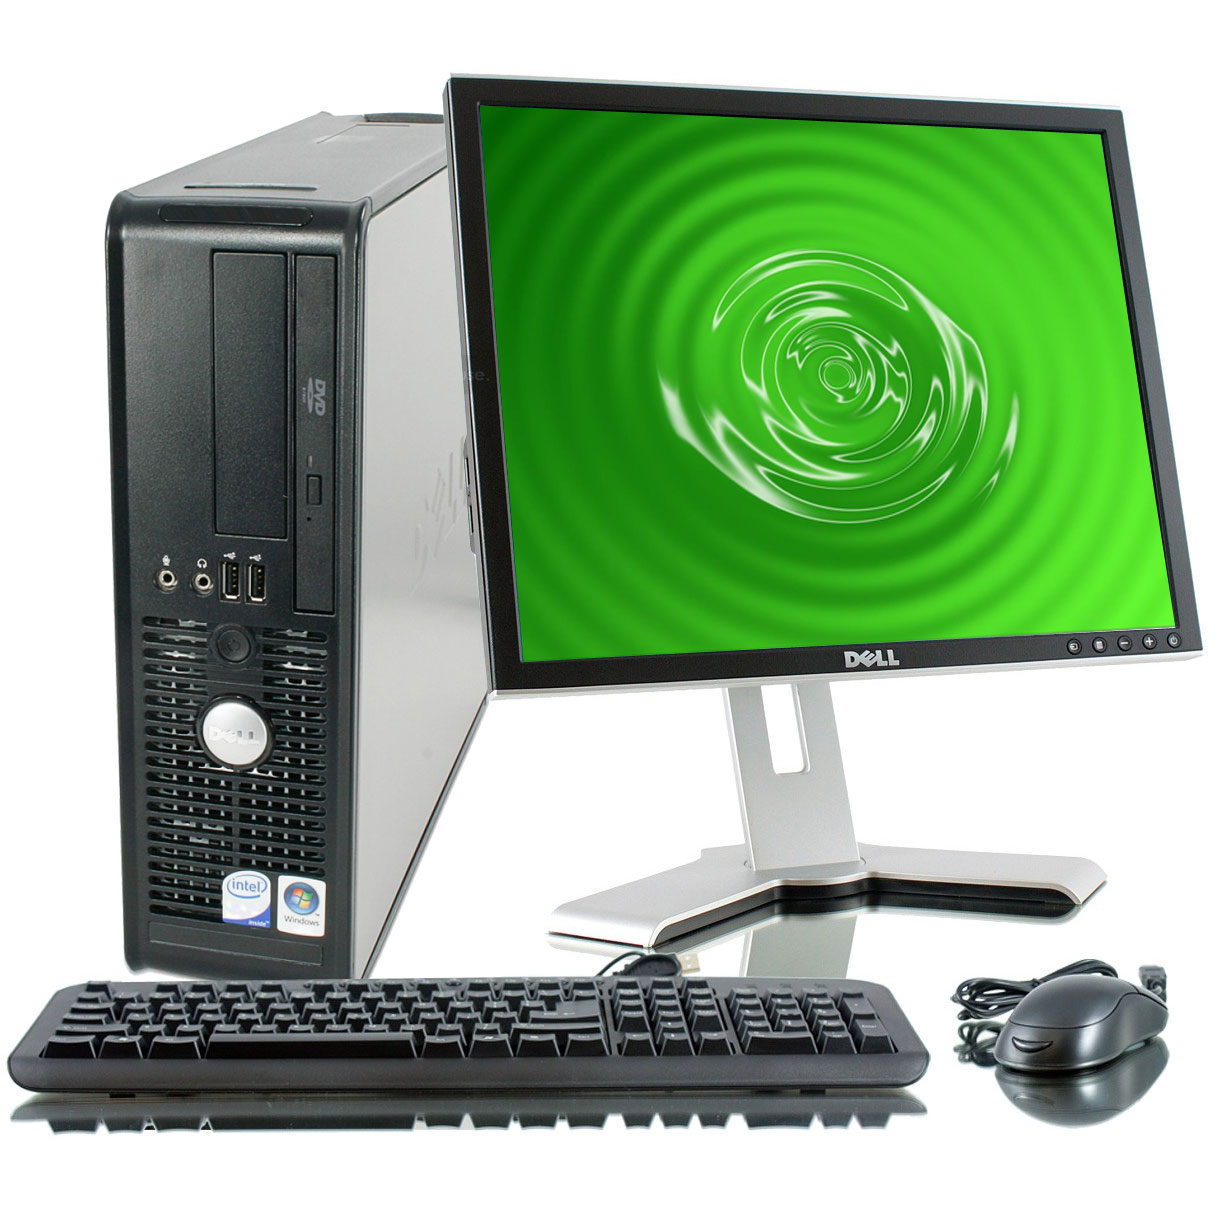 "Off Lease REFURBISHED Dell Optiplex 755 C2D 2.3Ghz 2GB 80GB DVD Win 7 Home Desktop Computer + 17""LCD"